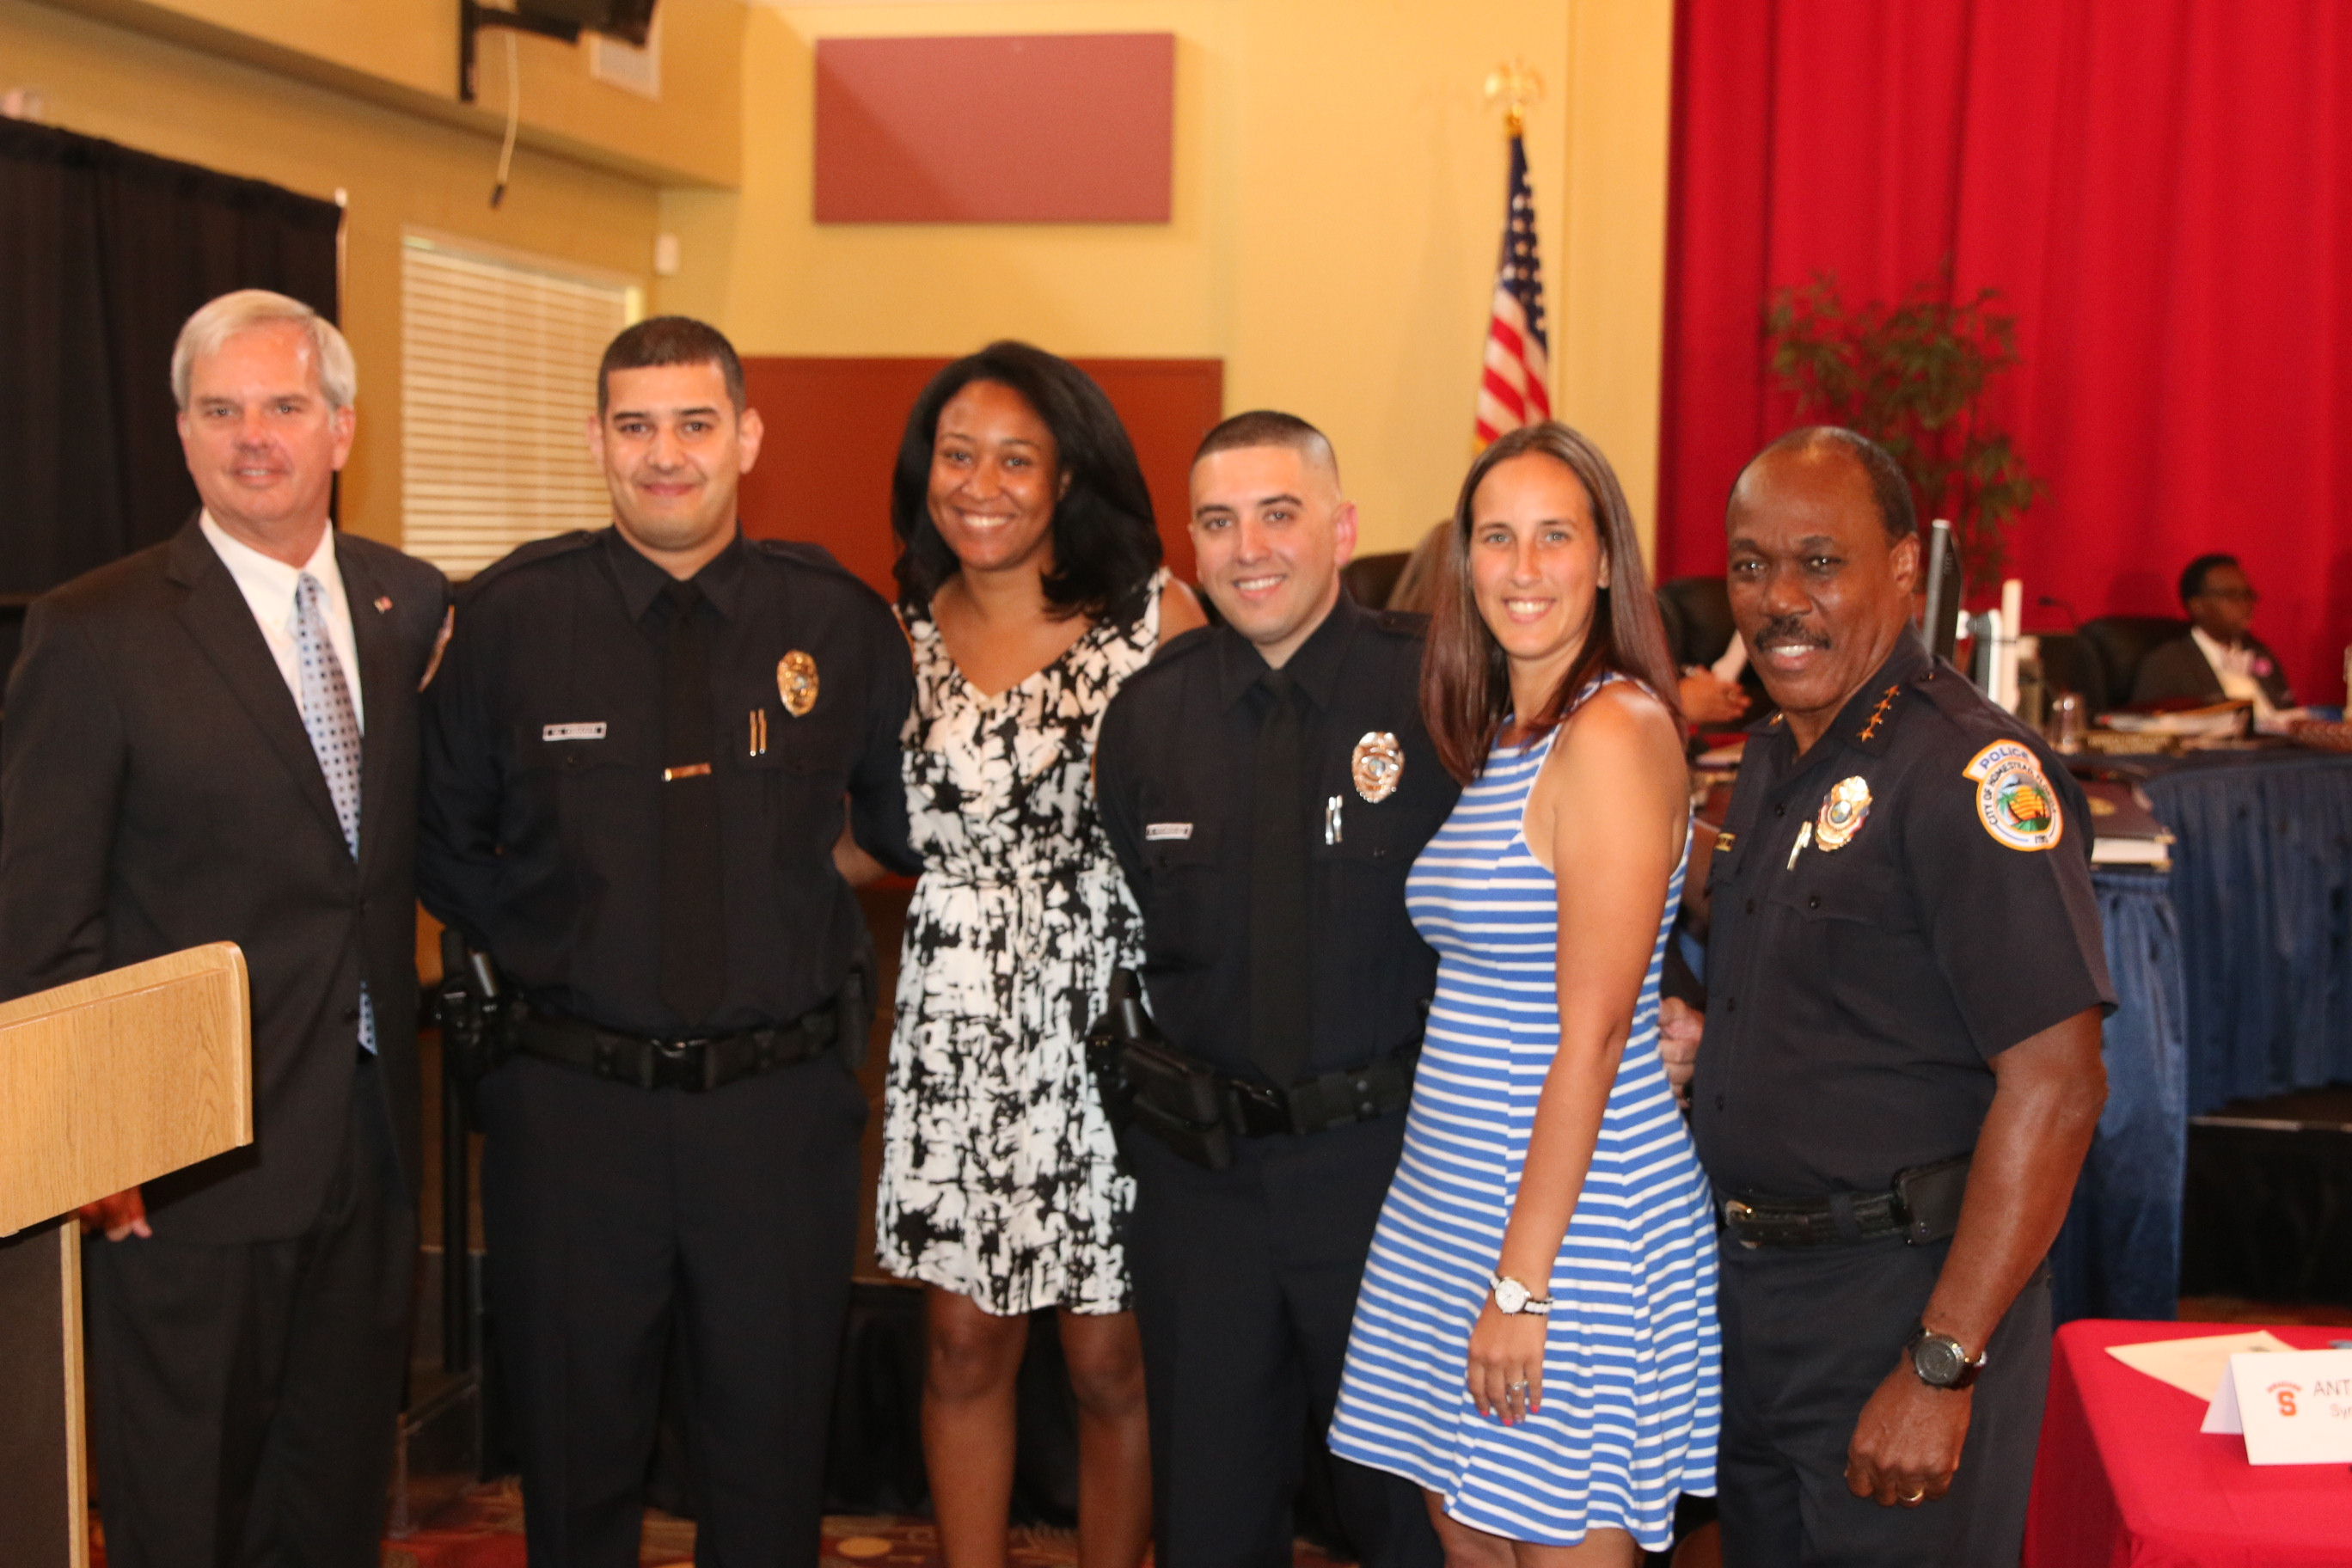 Three New Reserve Officers Join the Ranks of the Homestead Police Department